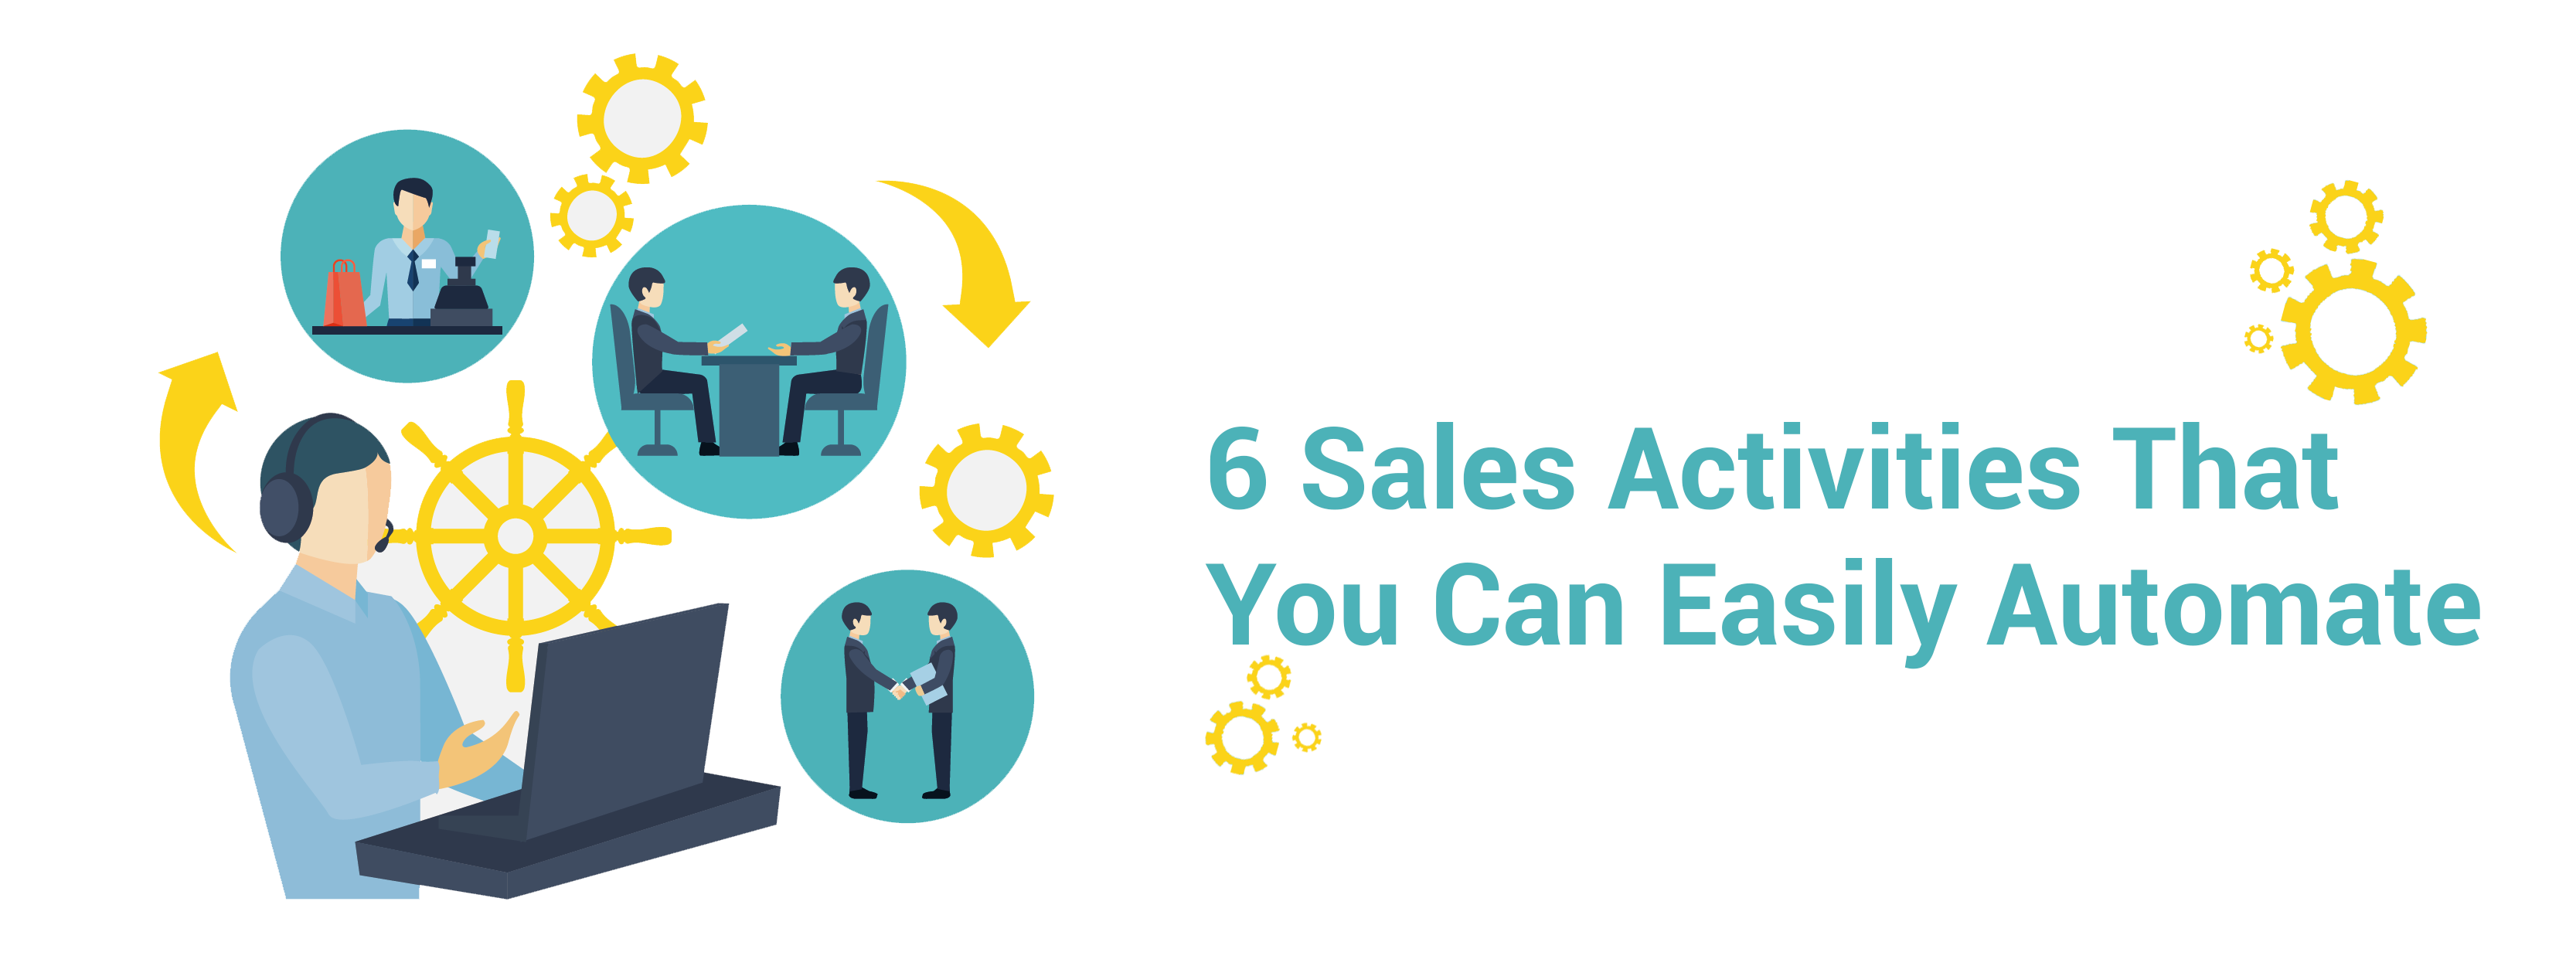 6 sales activities that you can easily automate